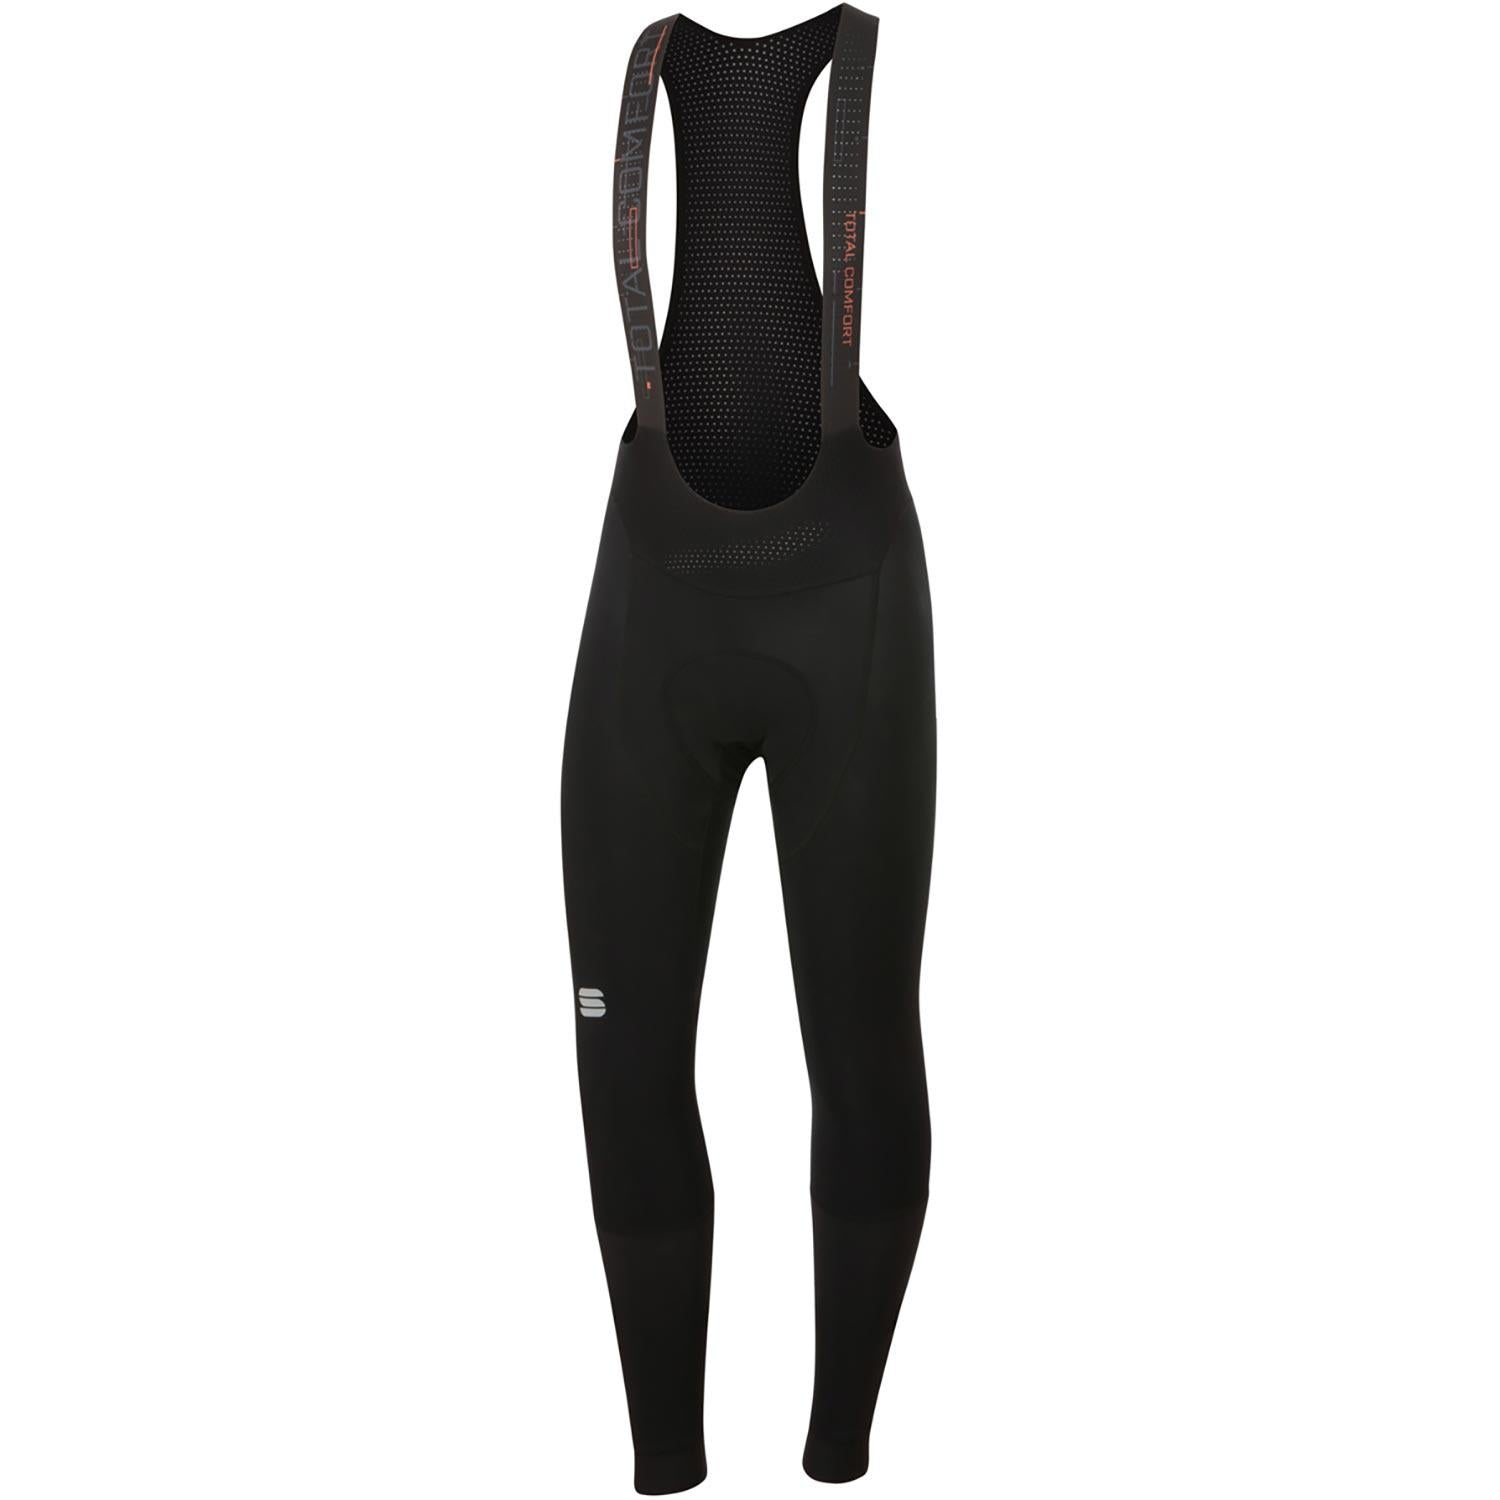 Sportful-Sportful Total Comfort Bibtights-Black-S-SF205160022-saddleback-elite-performance-cycling